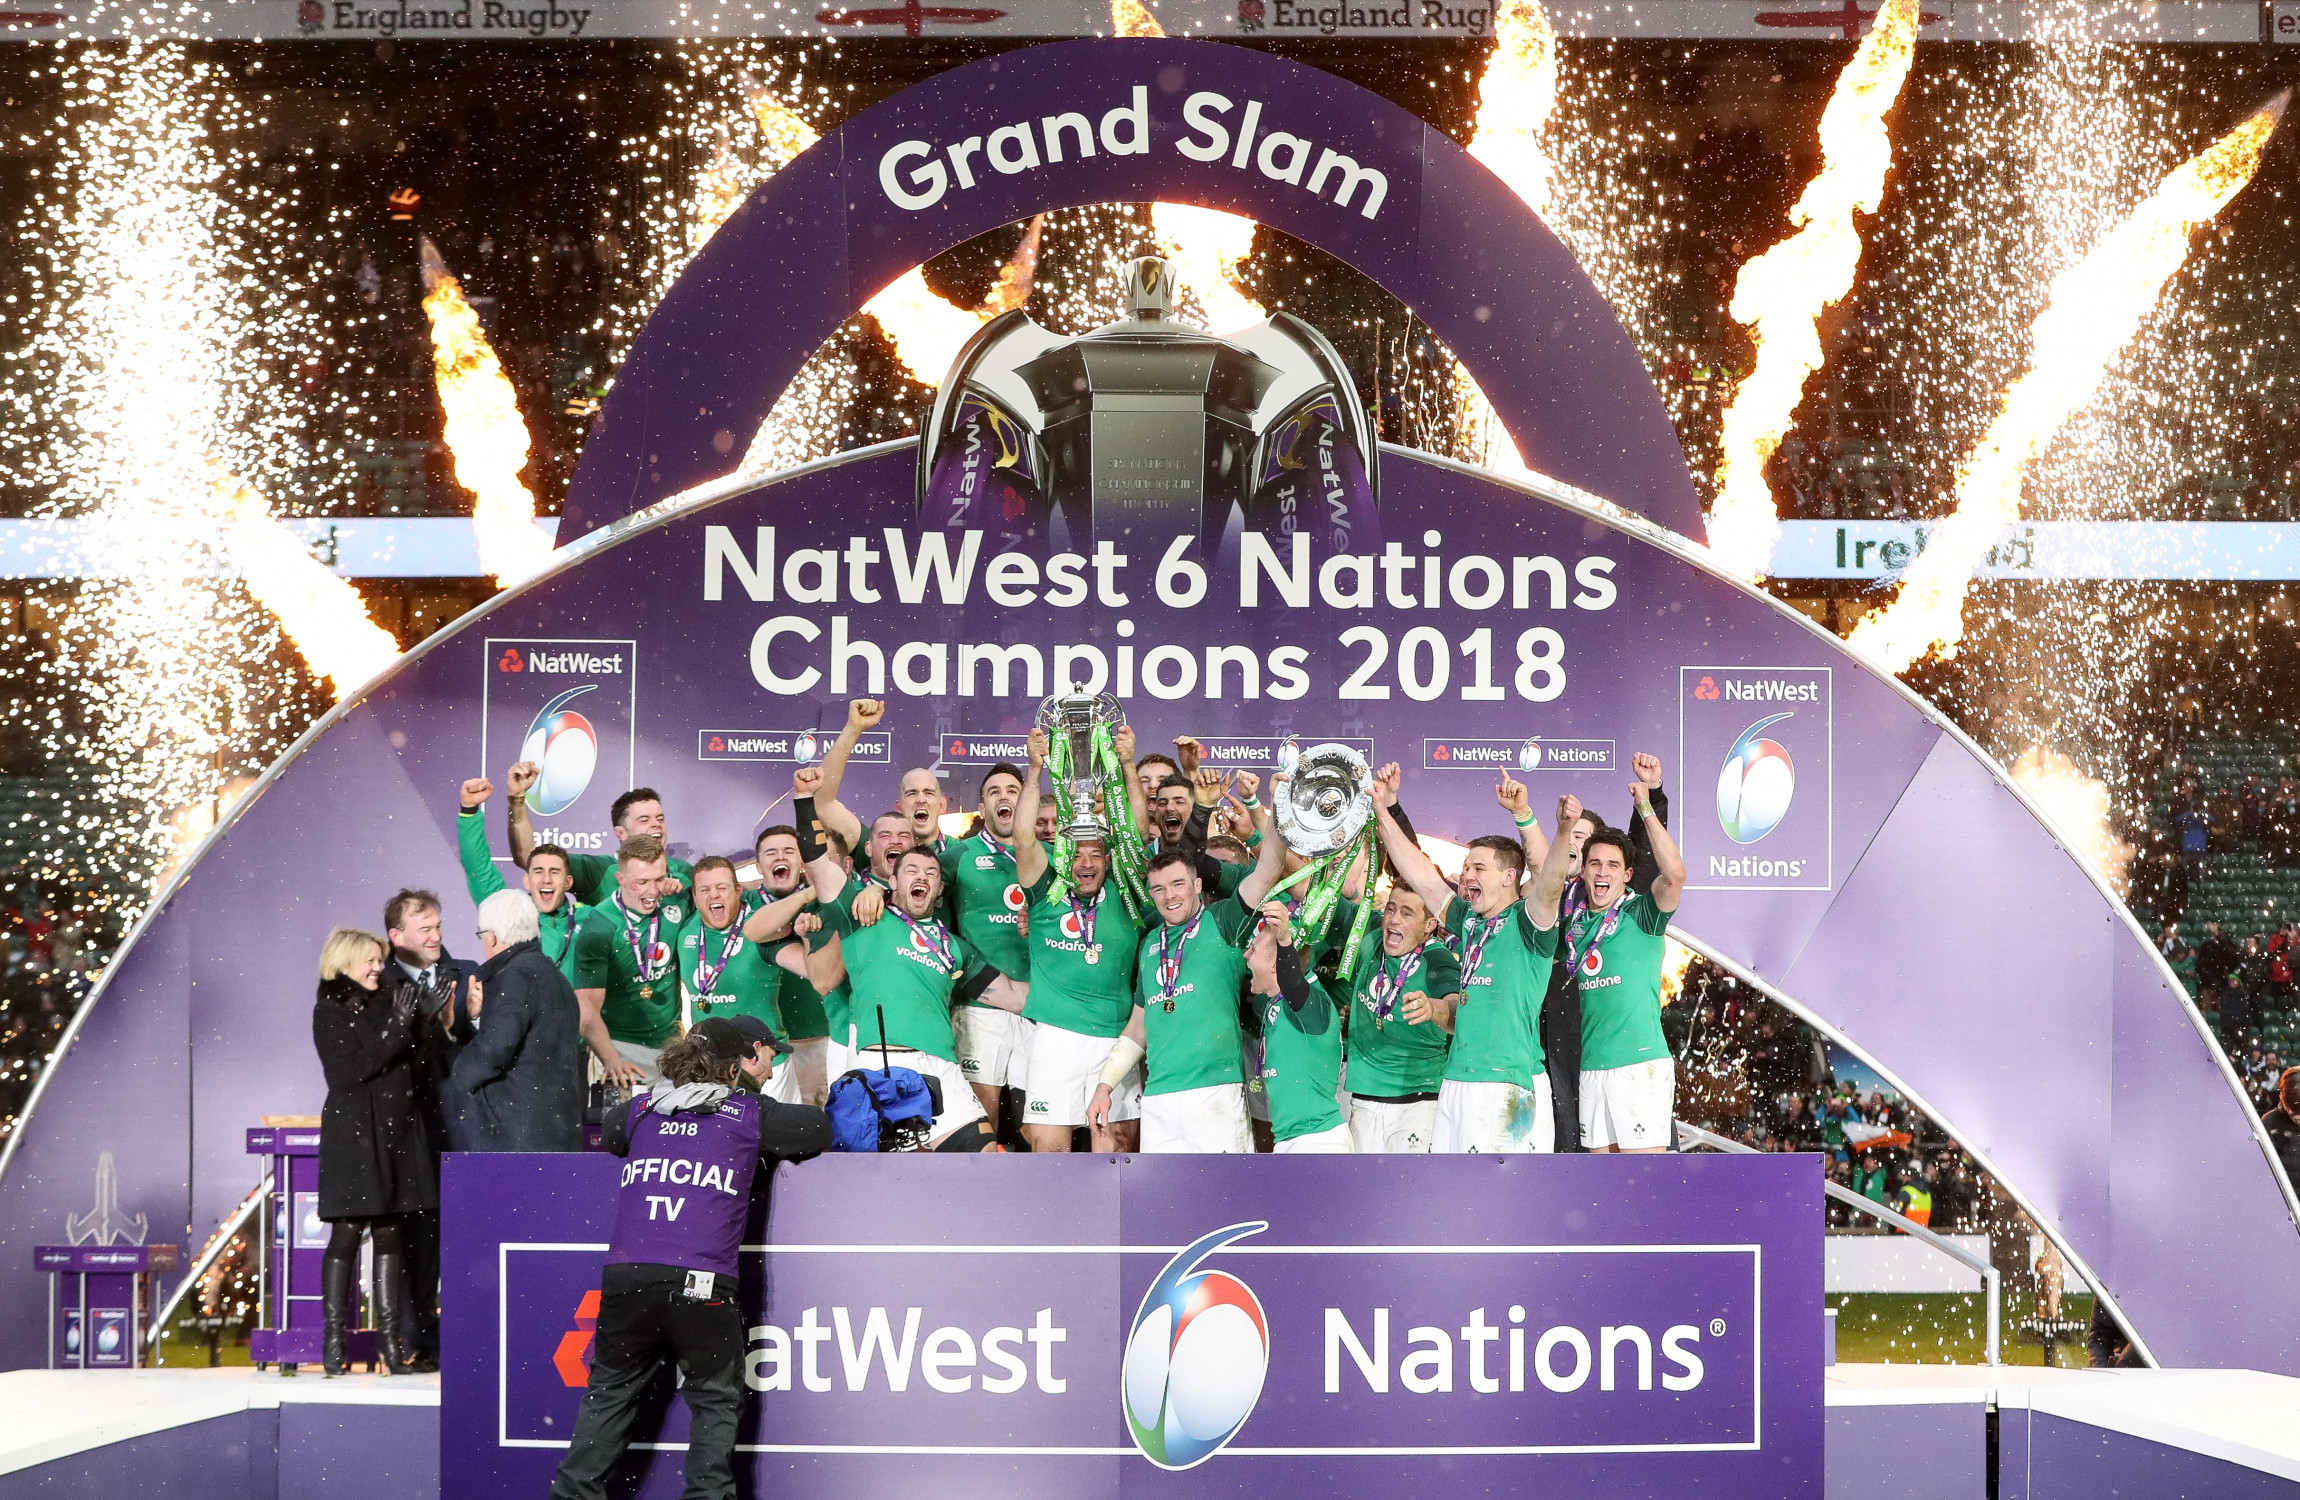 Irish rugby team arrive in Dublin for Grand Slam celebration